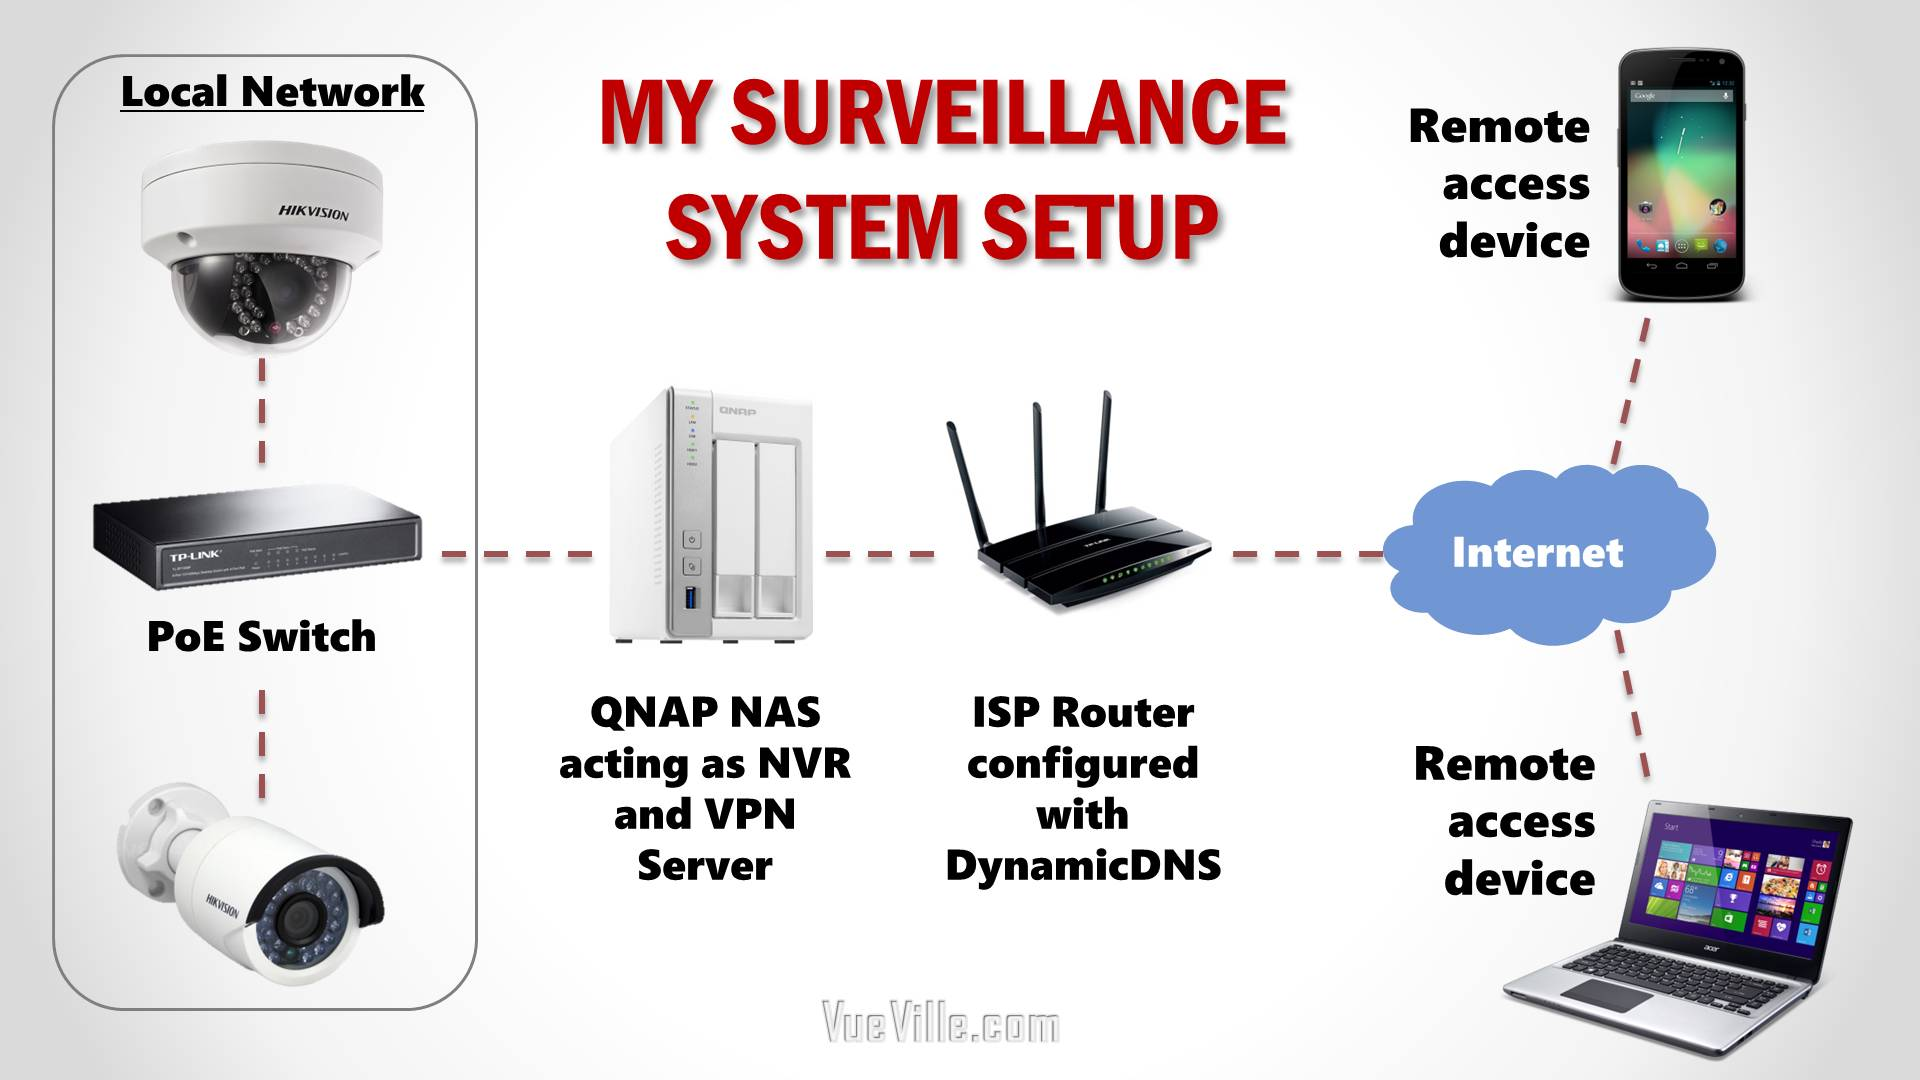 How We Built Our Diy Home Security Camera System Vueville Wireless N Router Diagram Network Topology Logical